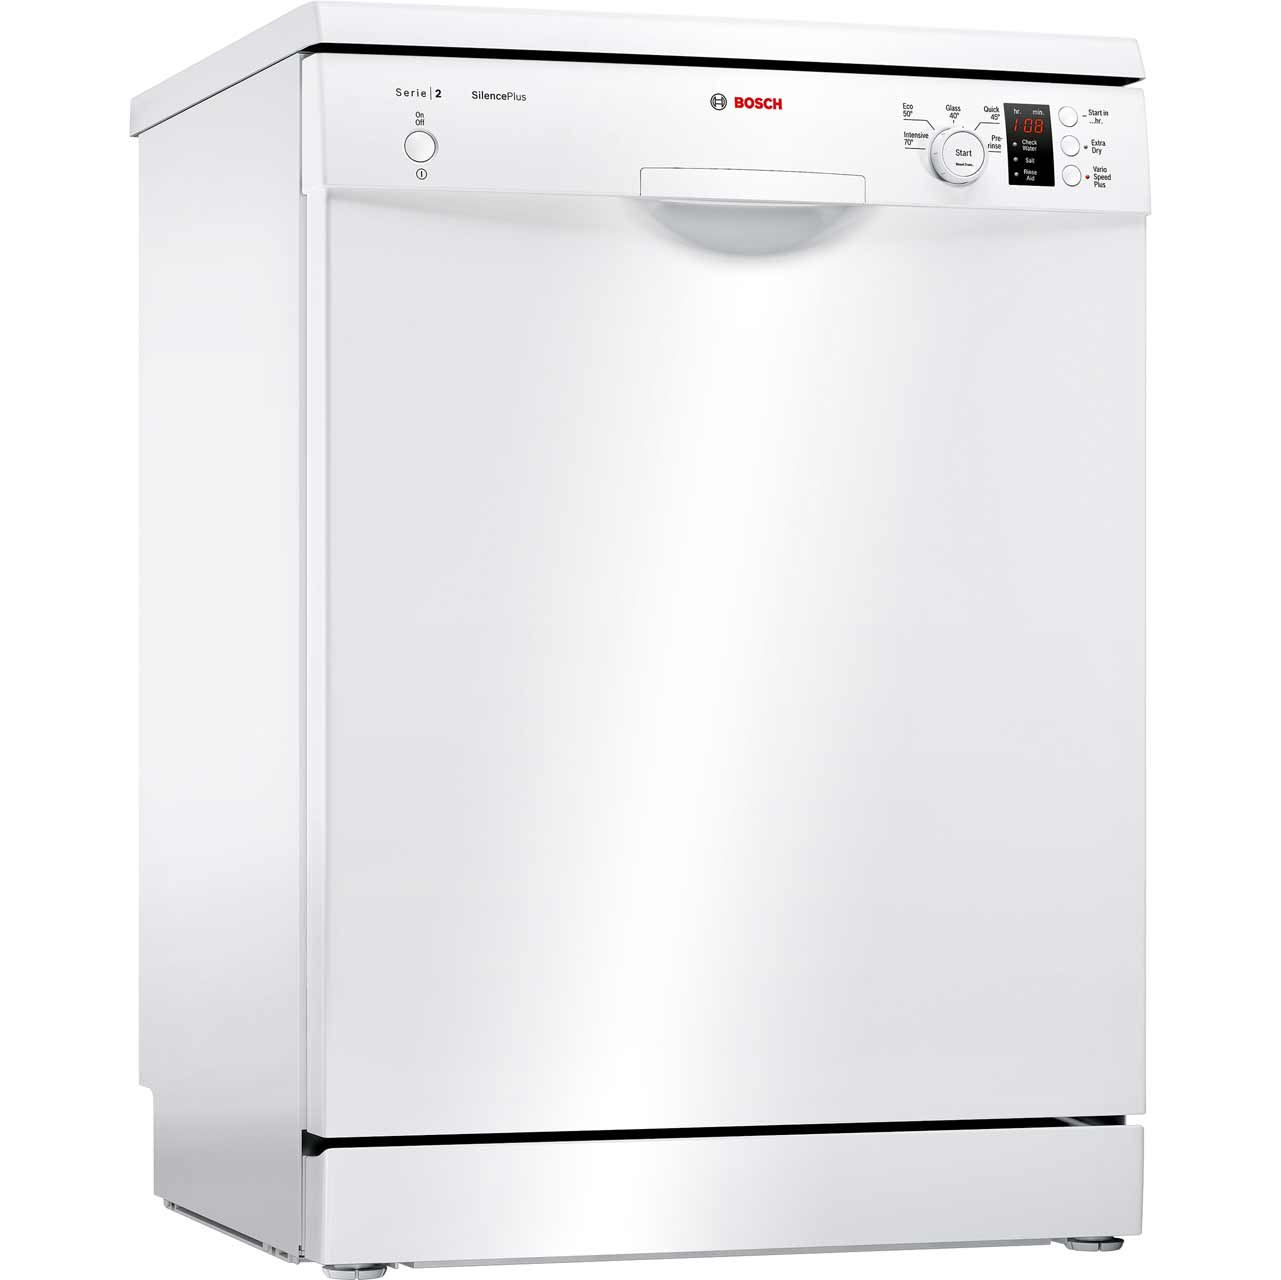 sms25aw00g wh bosch serie 2 dishwasher white. Black Bedroom Furniture Sets. Home Design Ideas